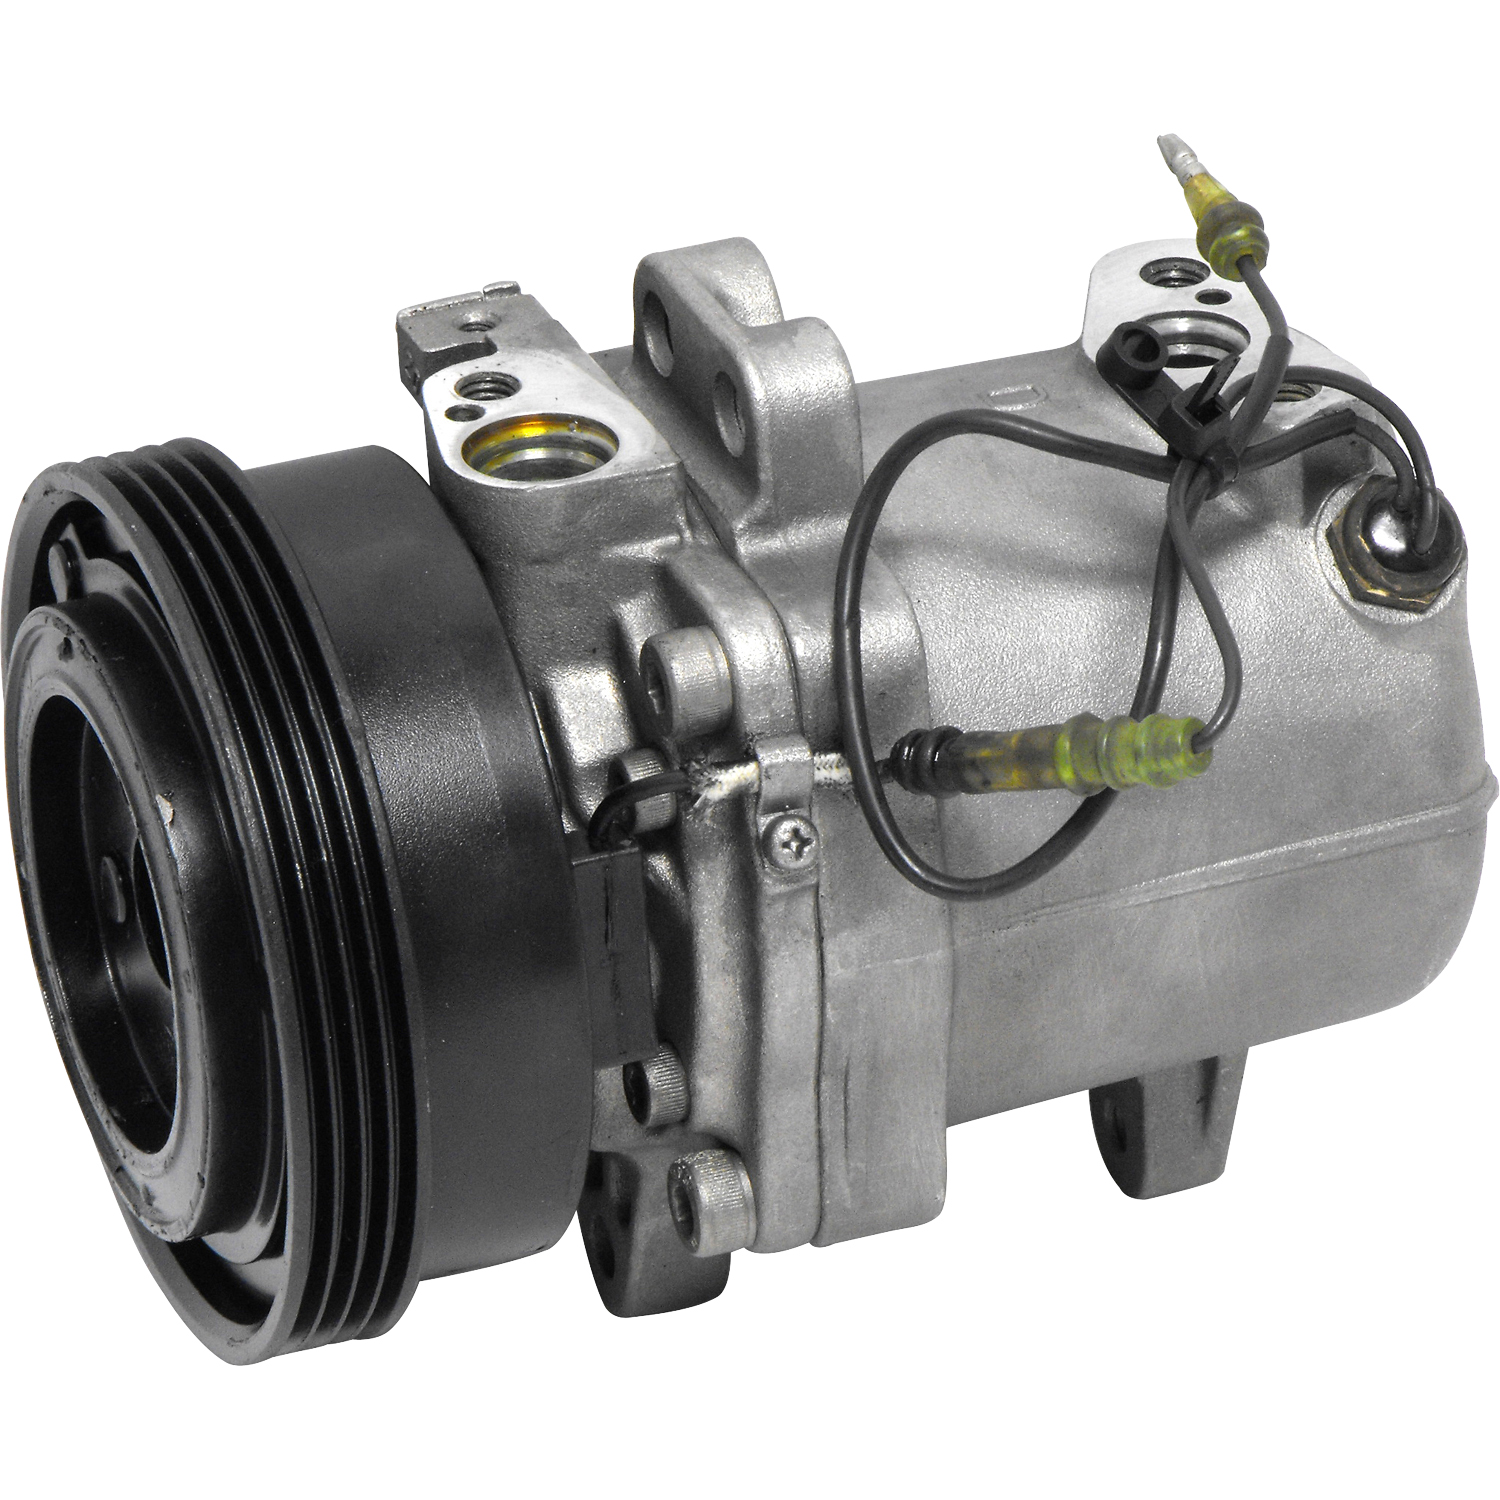 CO 10174C SS96D1 Compressor Assembly